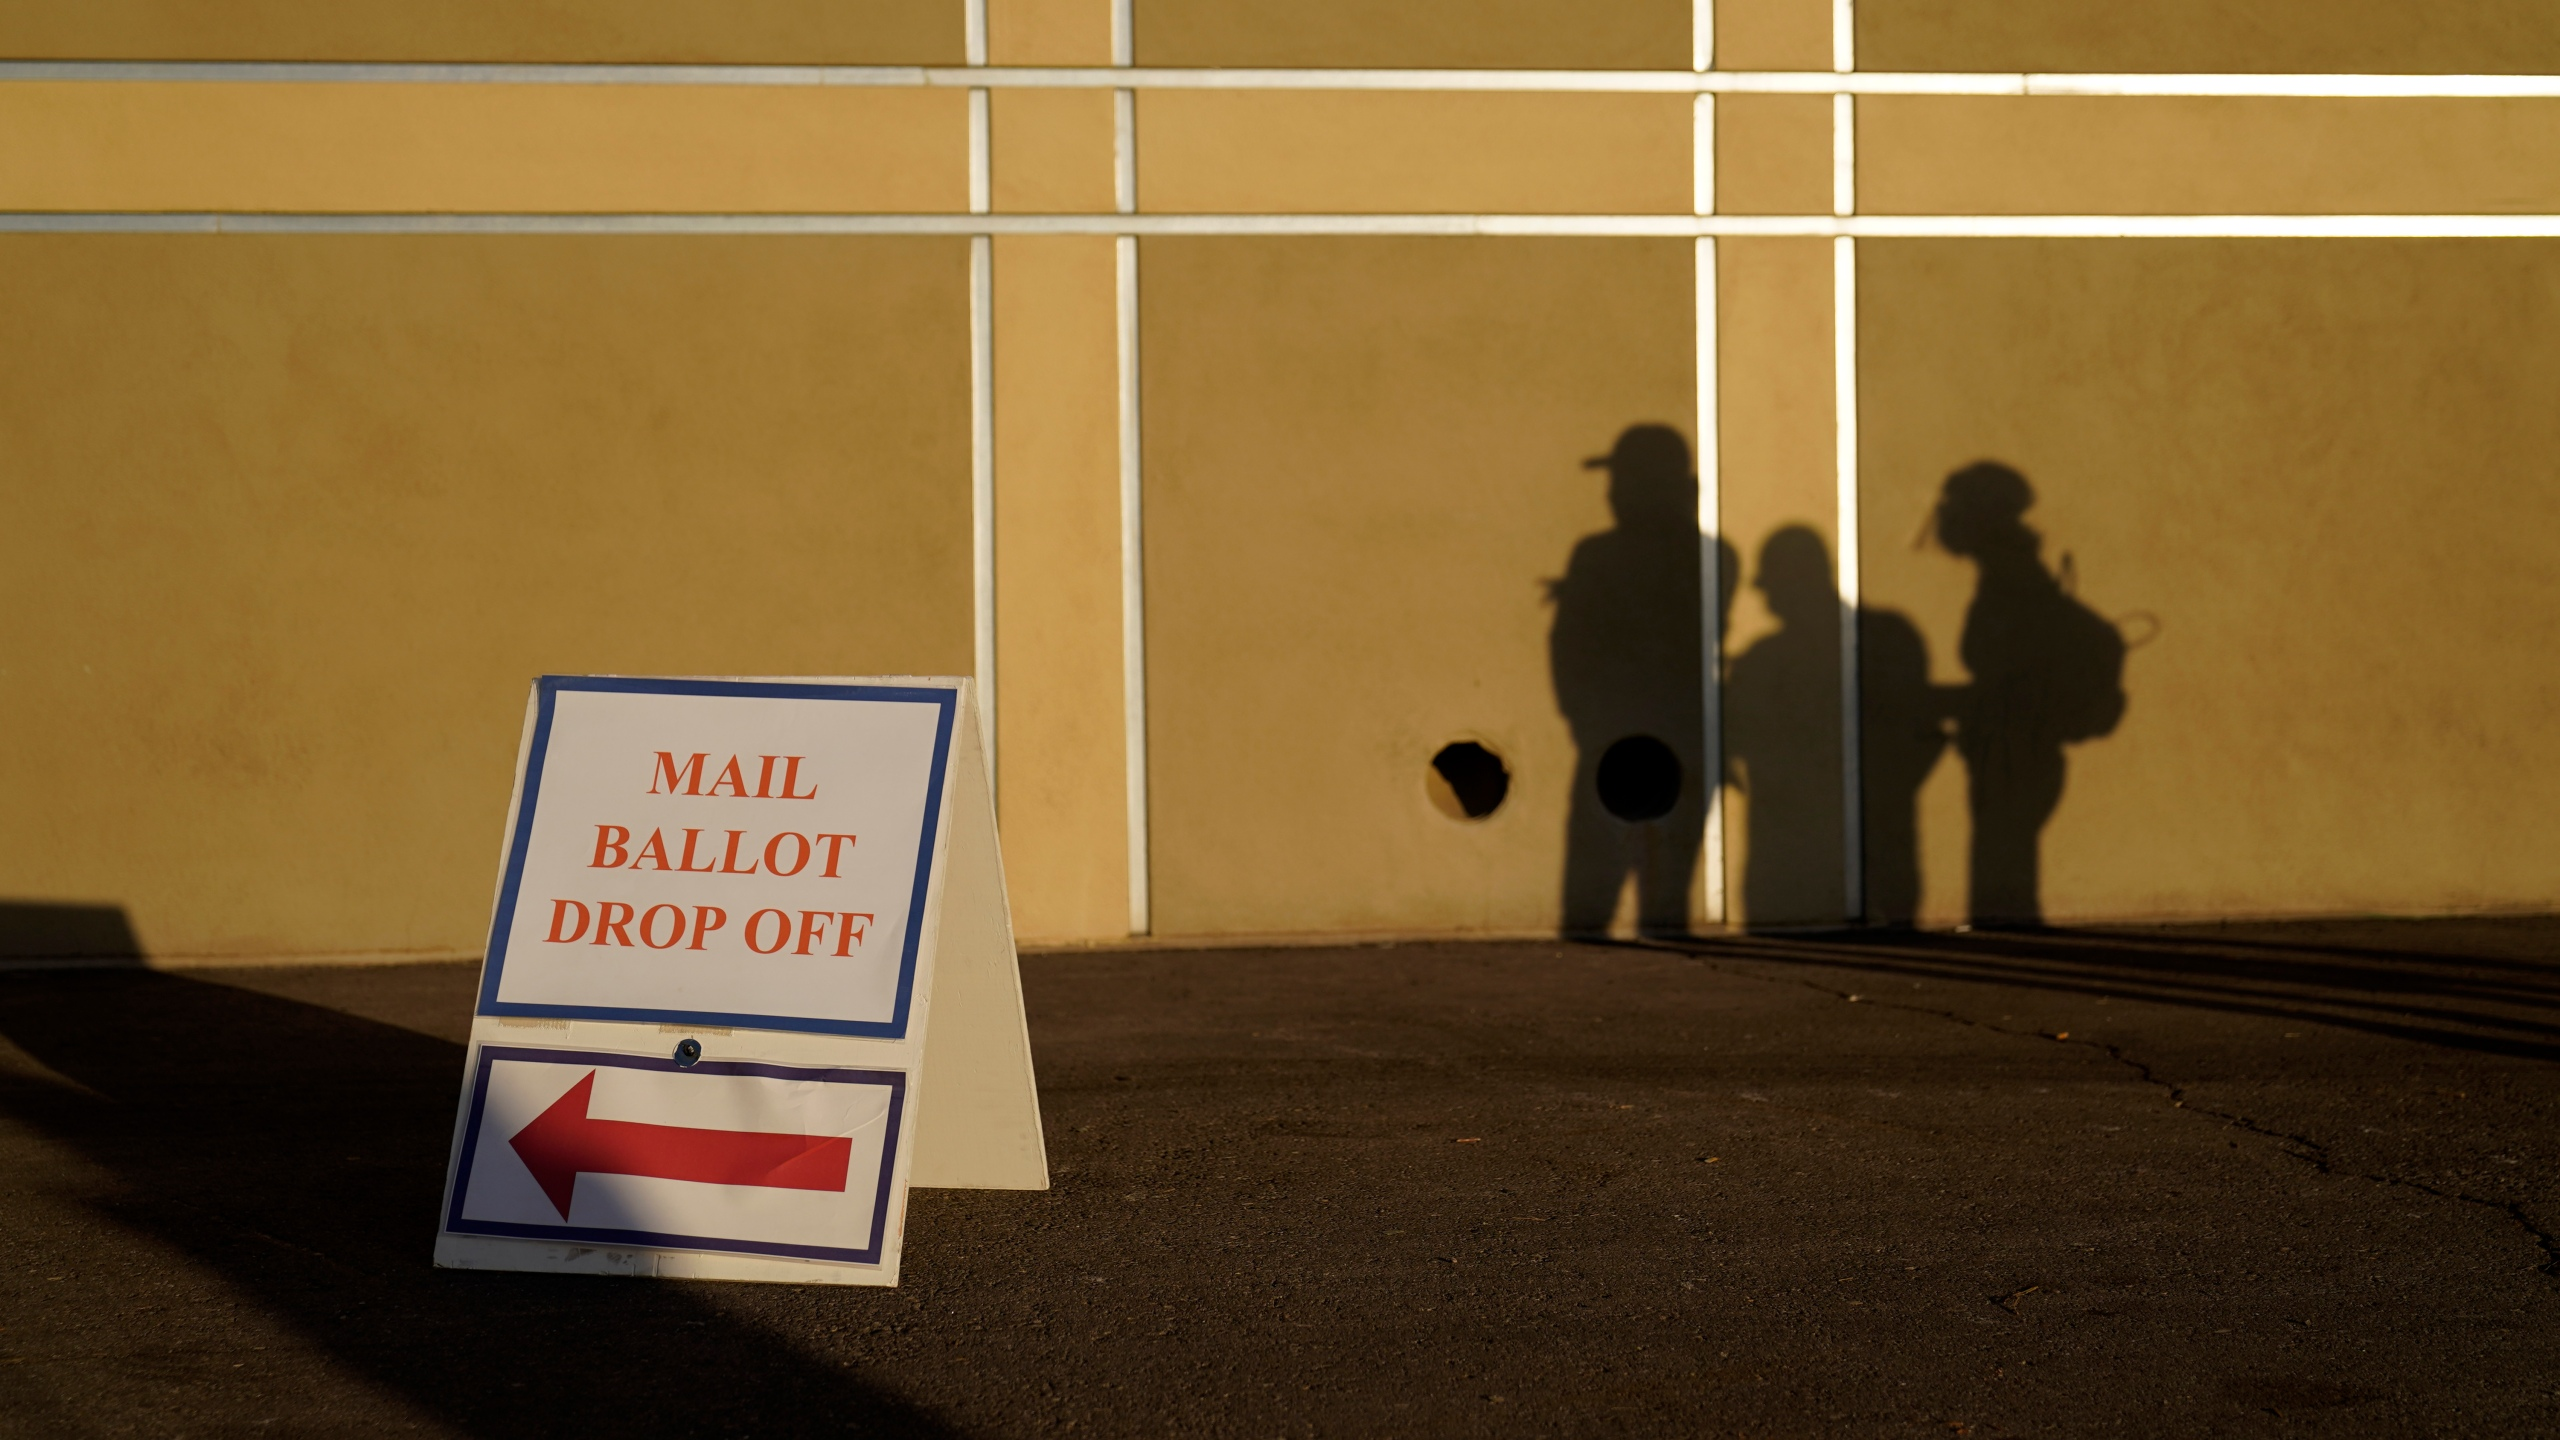 In this Nov. 3, 2020, file photo people wait outside of a polling place on Election Day in Las Vegas. Nevada election law stipulates that in order to register to vote, an individual must have been a resident for 30 days preceding an election, but does not specify how long an already registered voter must be physically present in the state in order to participate in an election. (AP Photo/John Locher, File)